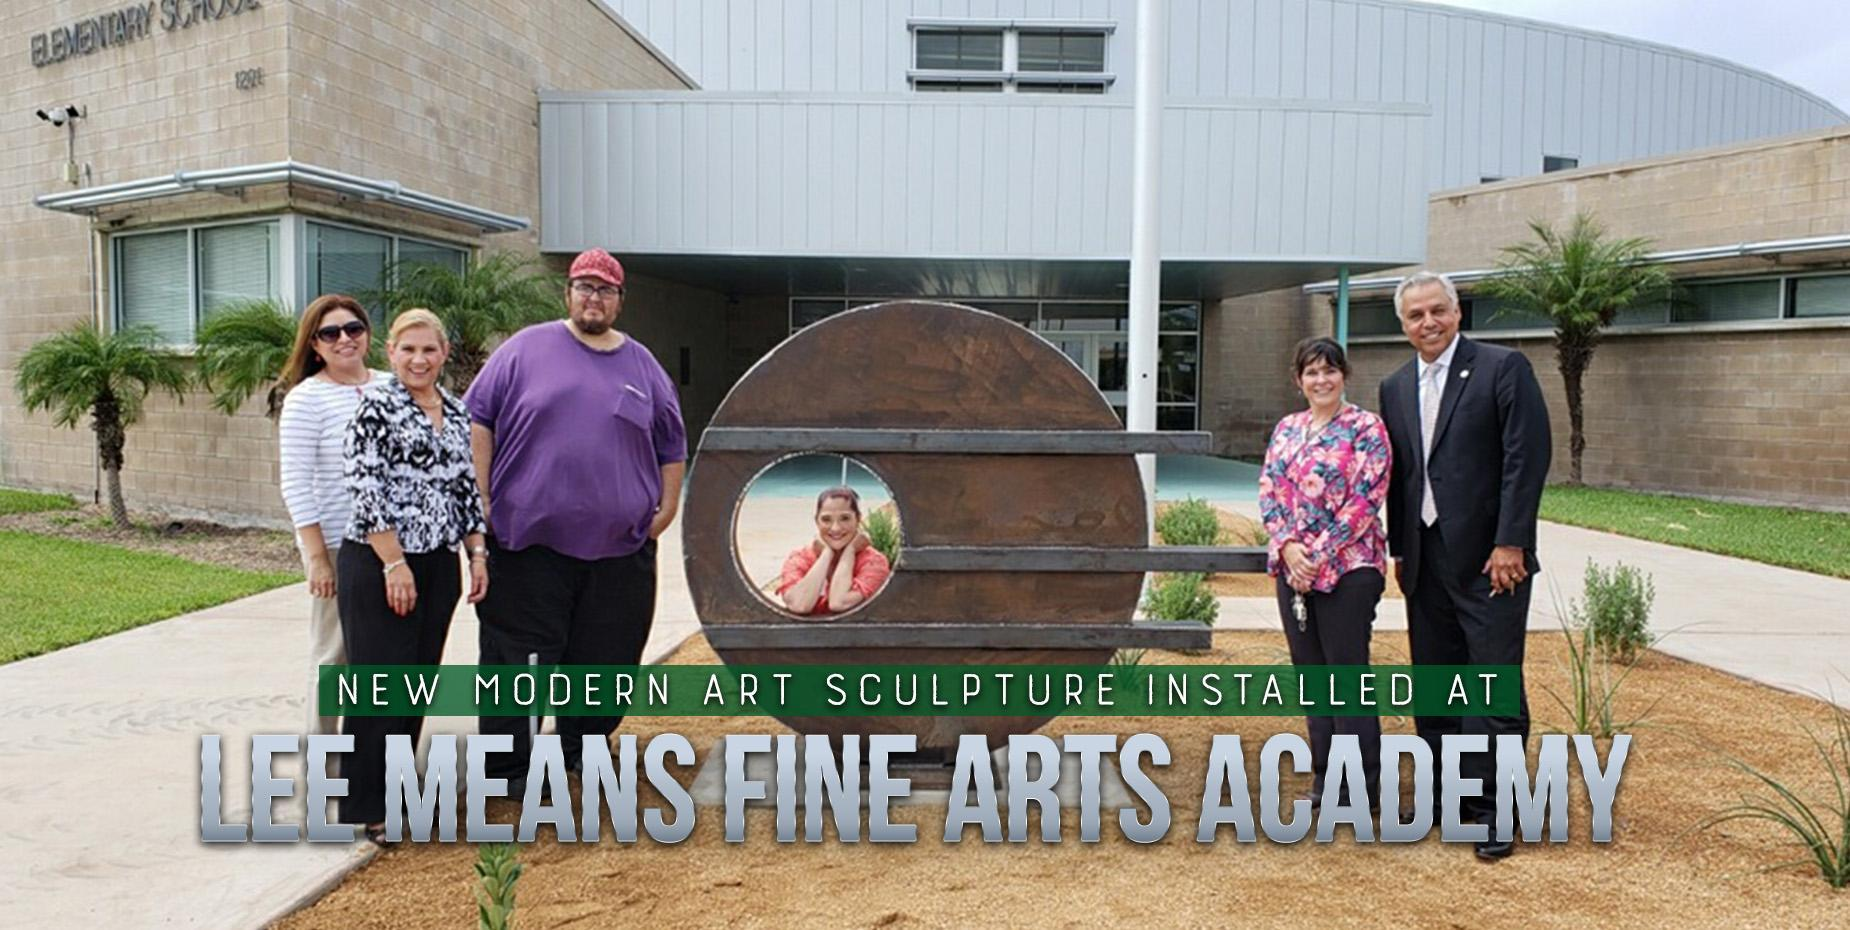 Modern art sculpture installed at Lee Means Arts Academy